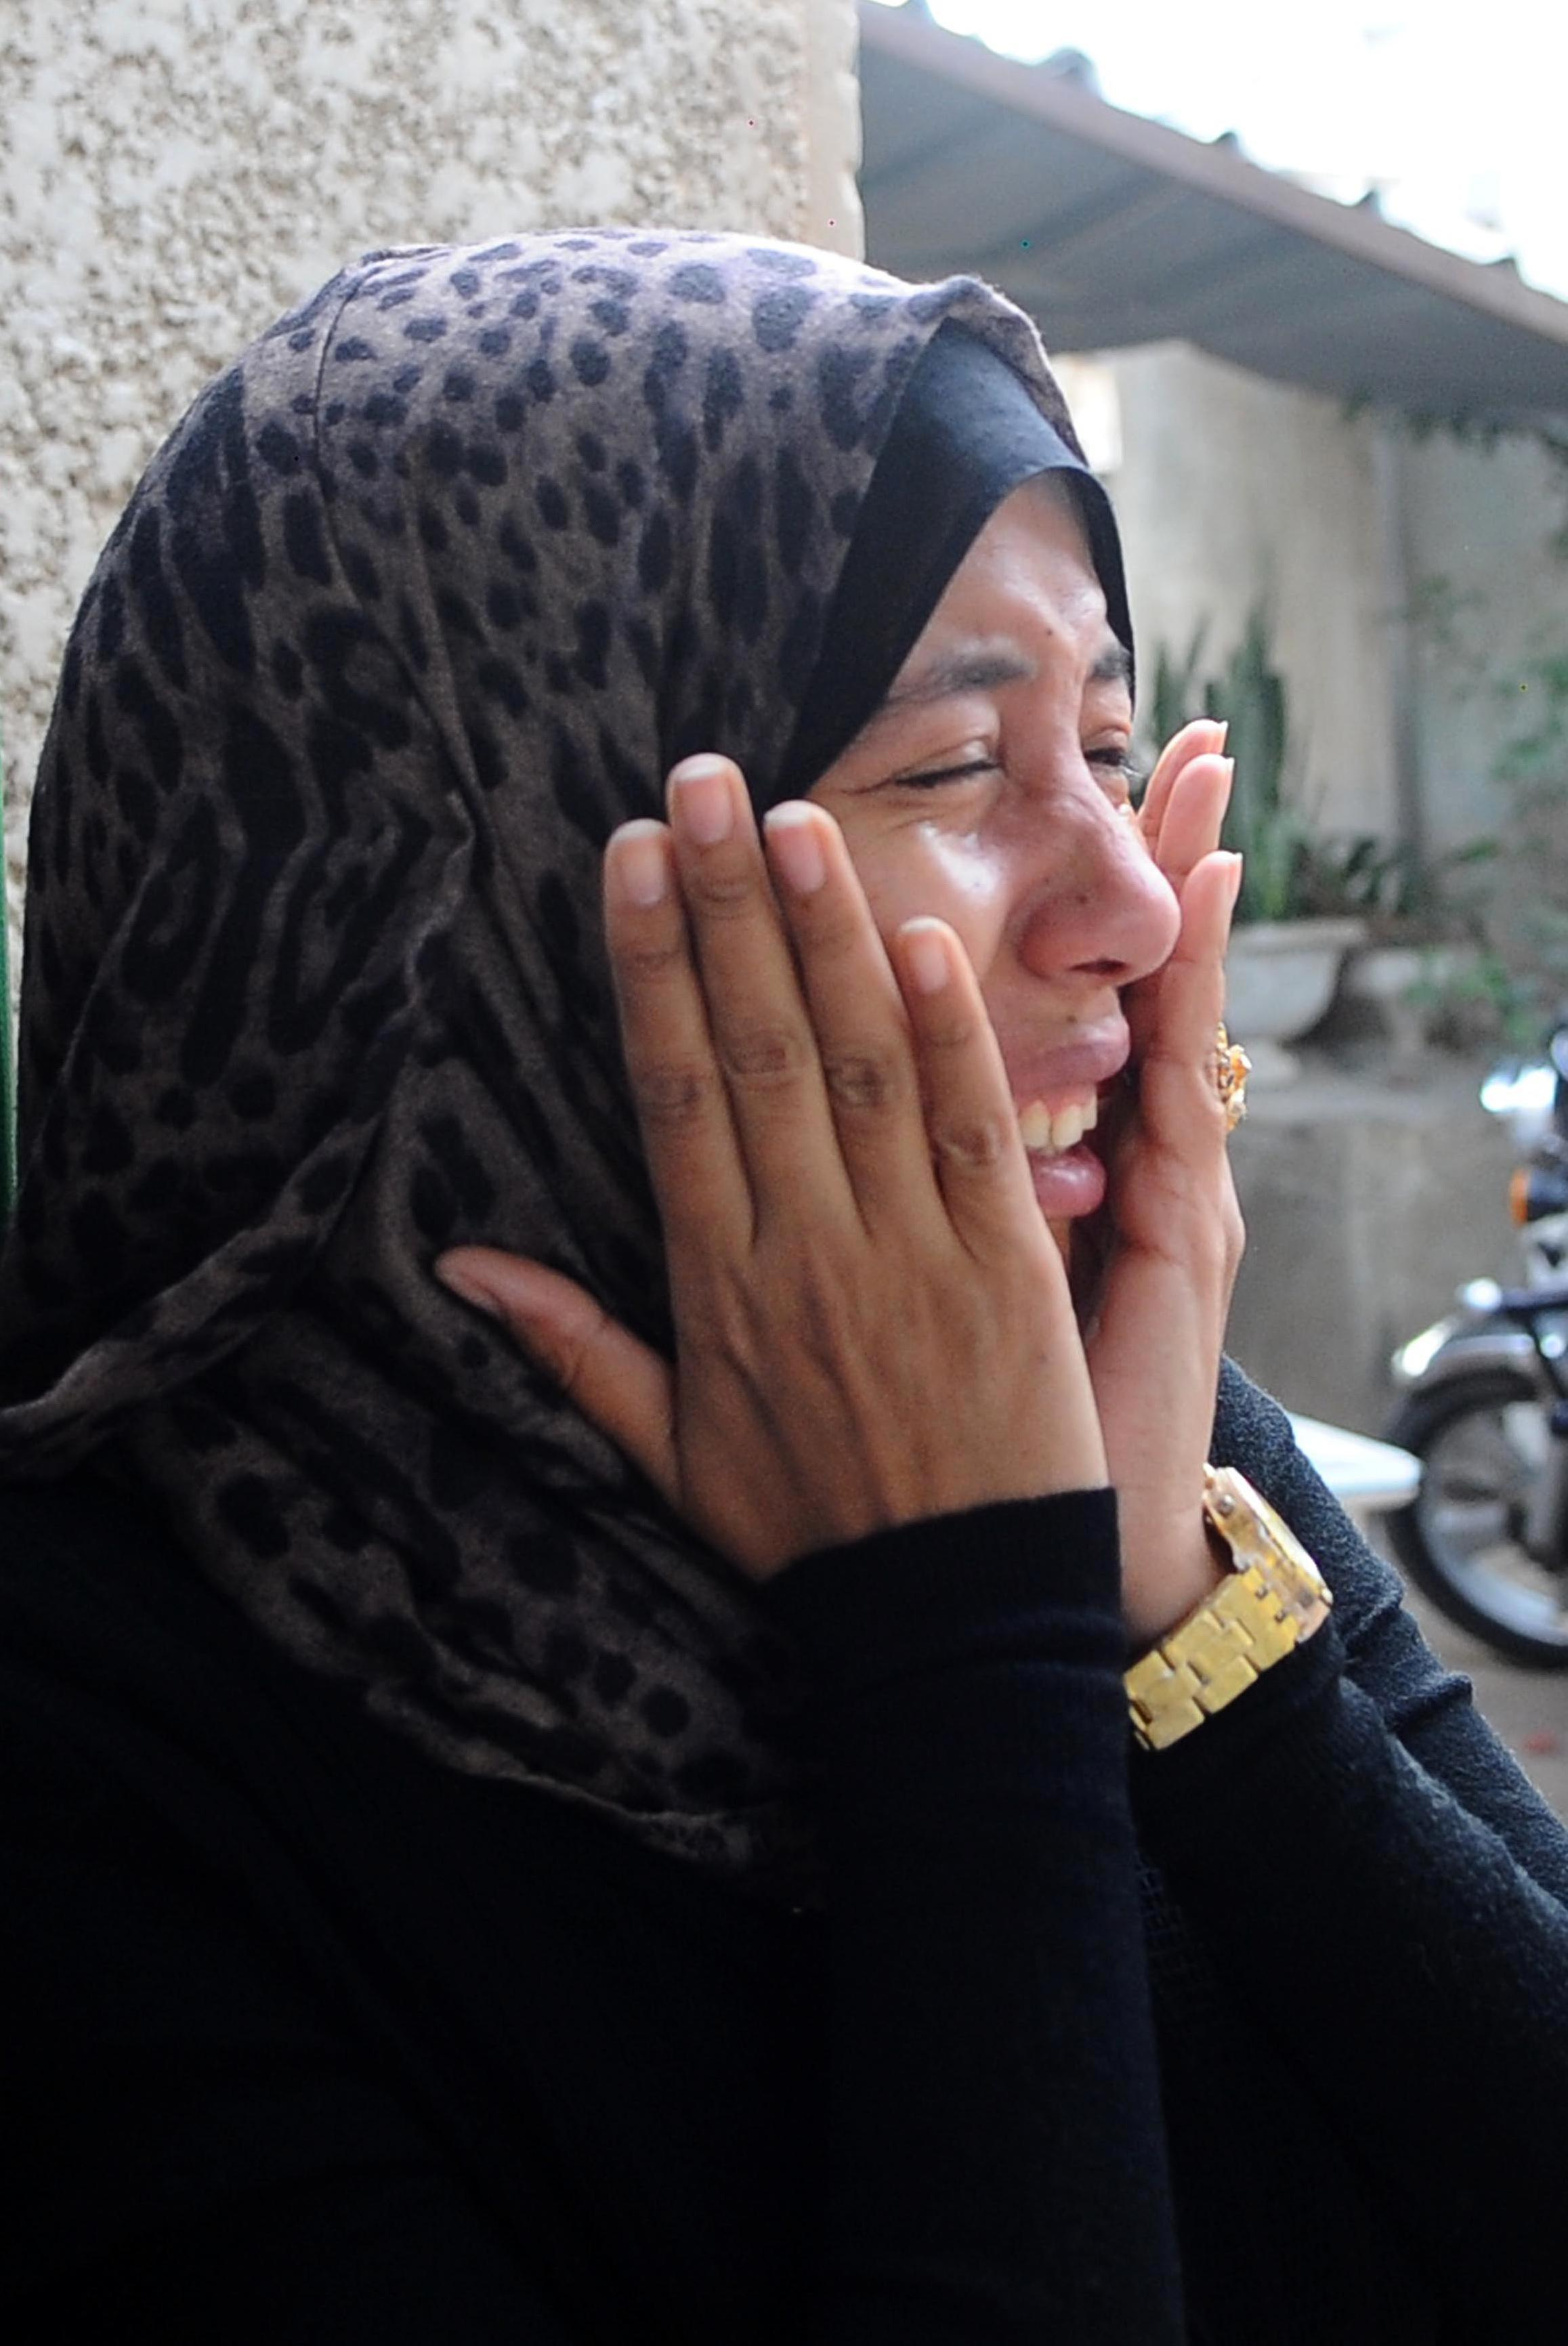 11 dead in unrest on Egypt uprising anniversary